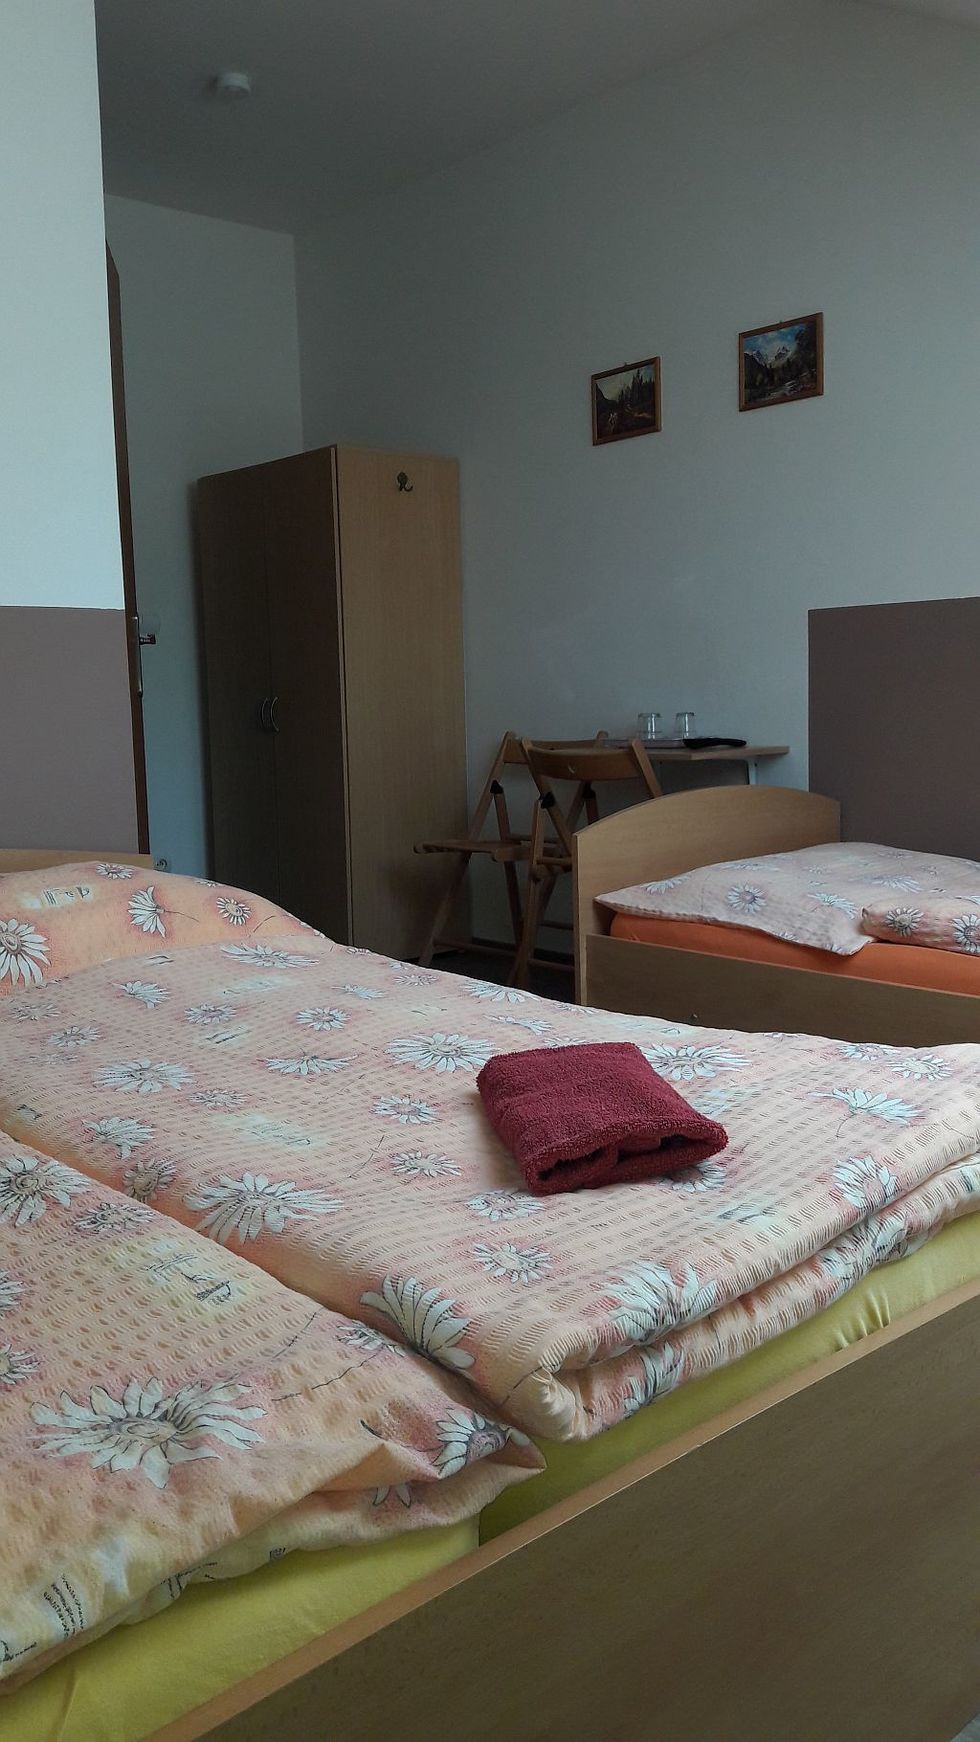 Triple Room With Double Bed And One Single Bed